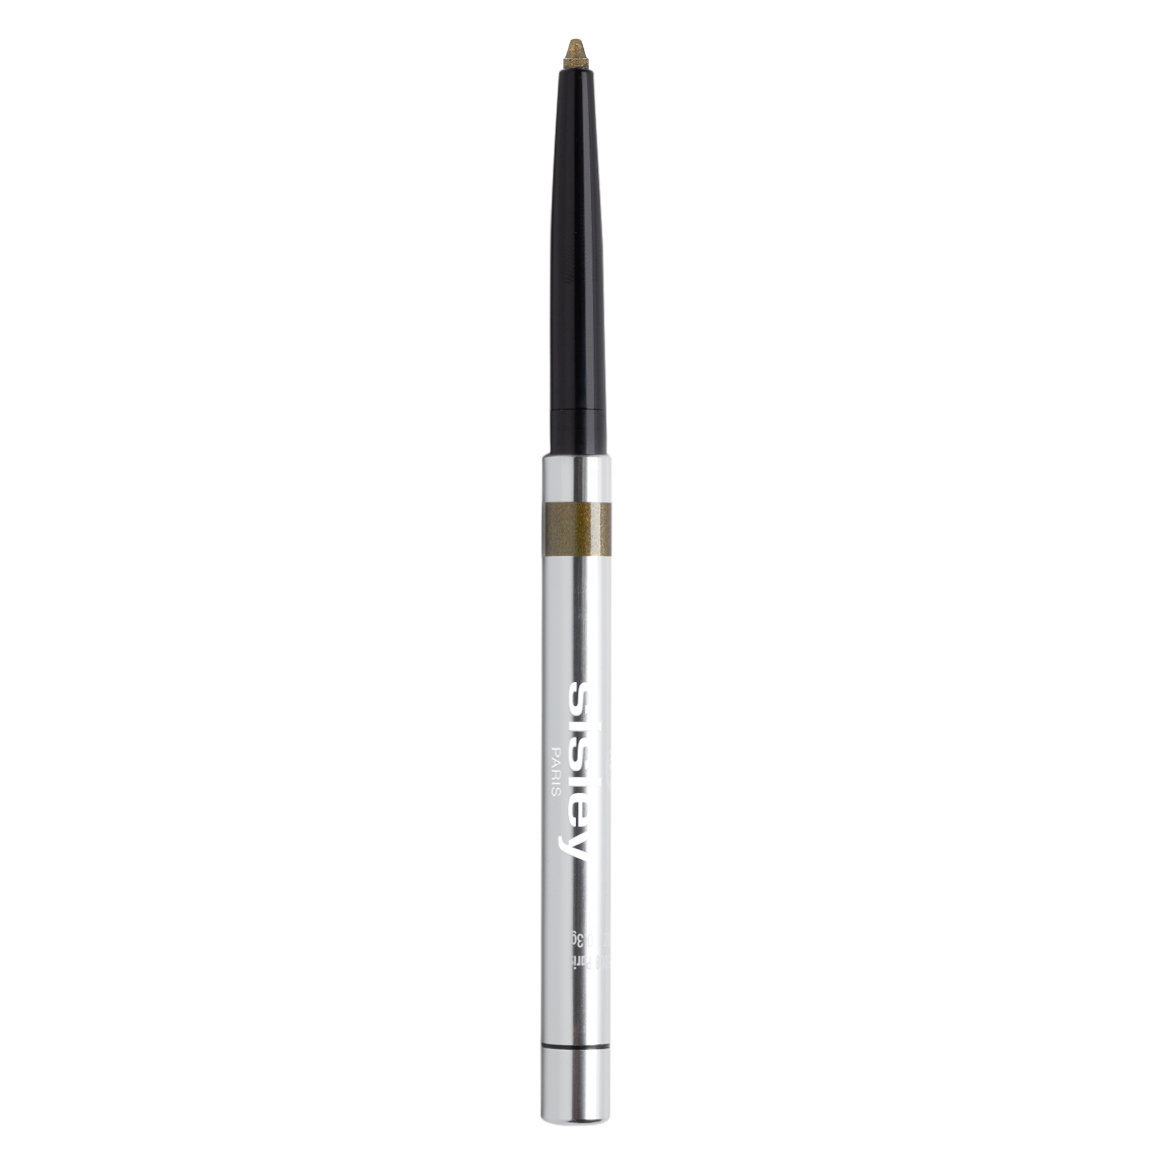 Sisley-Paris Phyto-Khol Star Waterproof 4 Sparking Bronze alternative view 1.